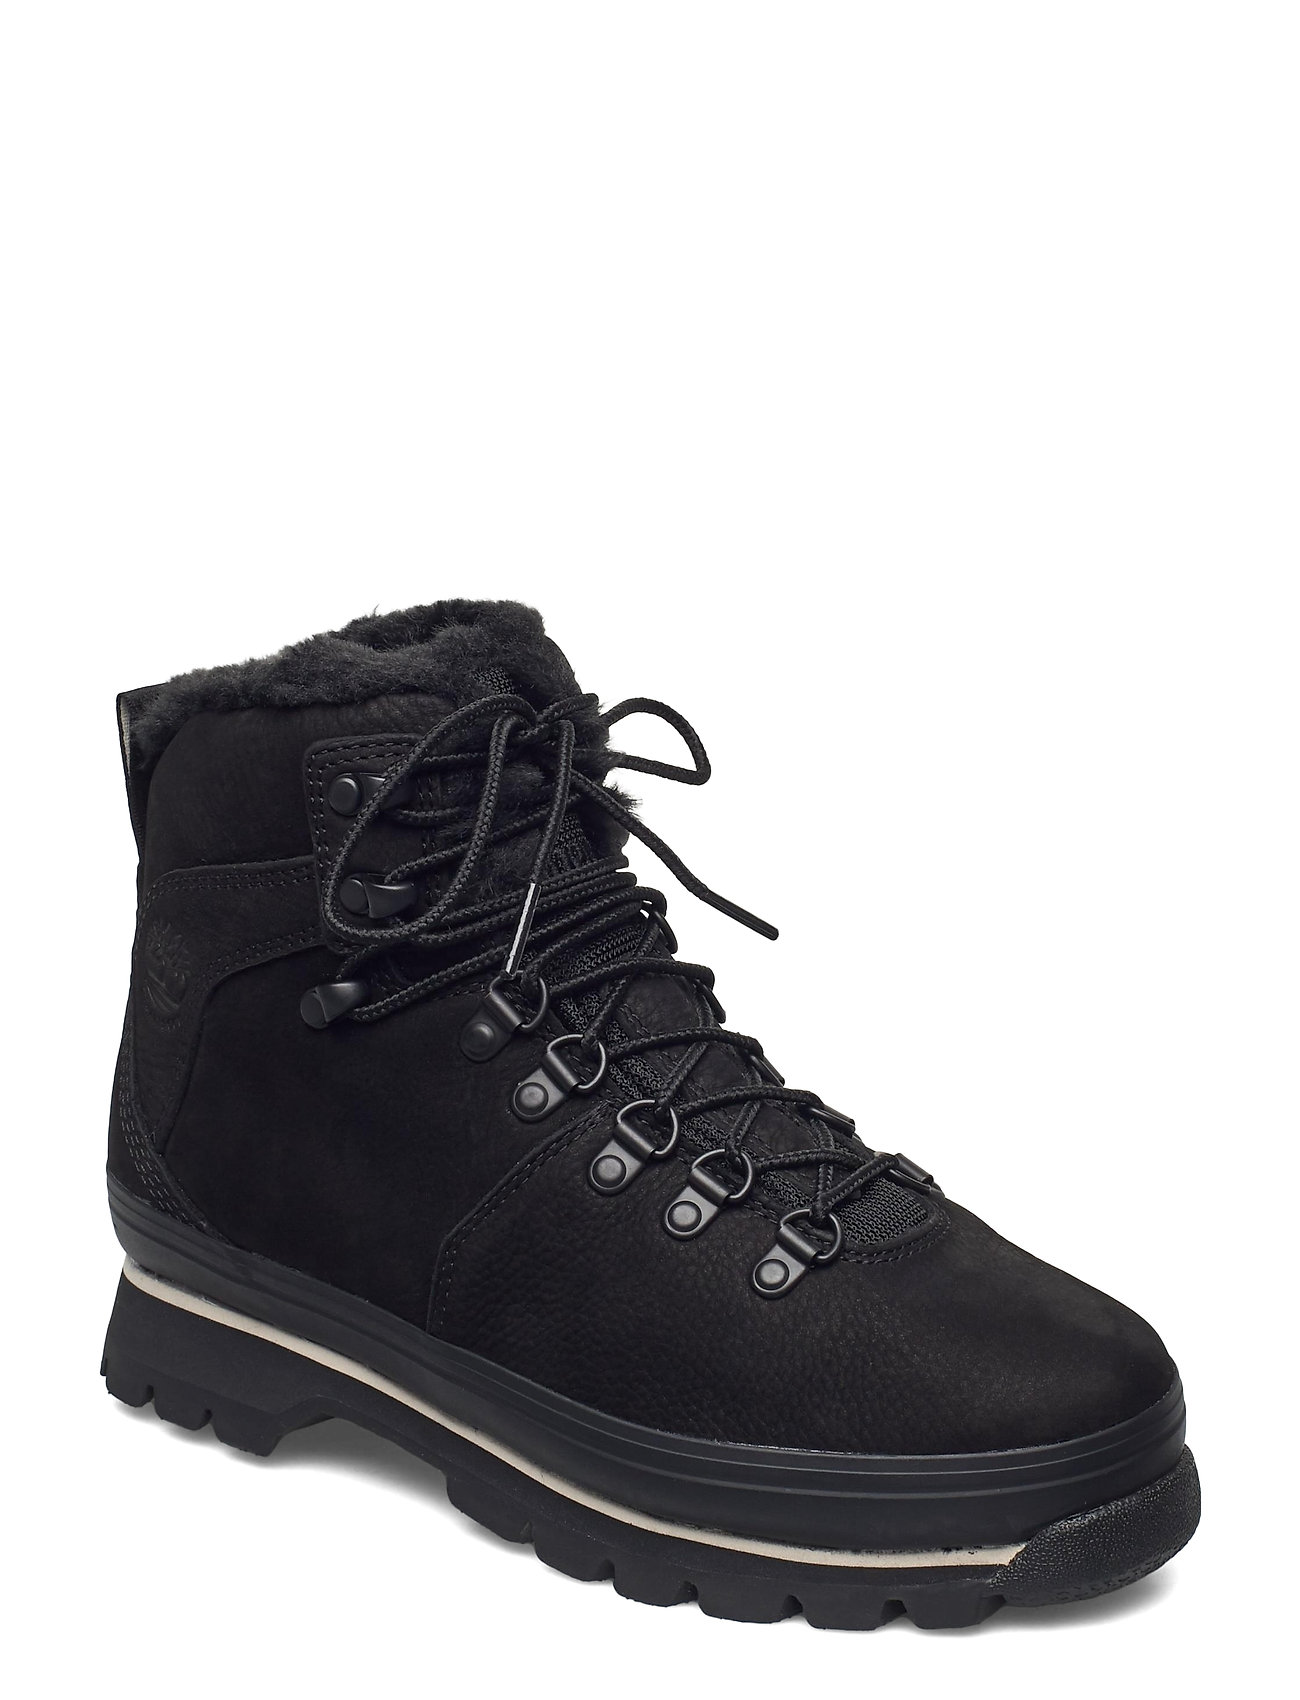 Image of Euro Hiker Wp Fur Lined Shoes Boots Ankle Boots Ankle Boot - Flat Sort Timberland (3465799337)